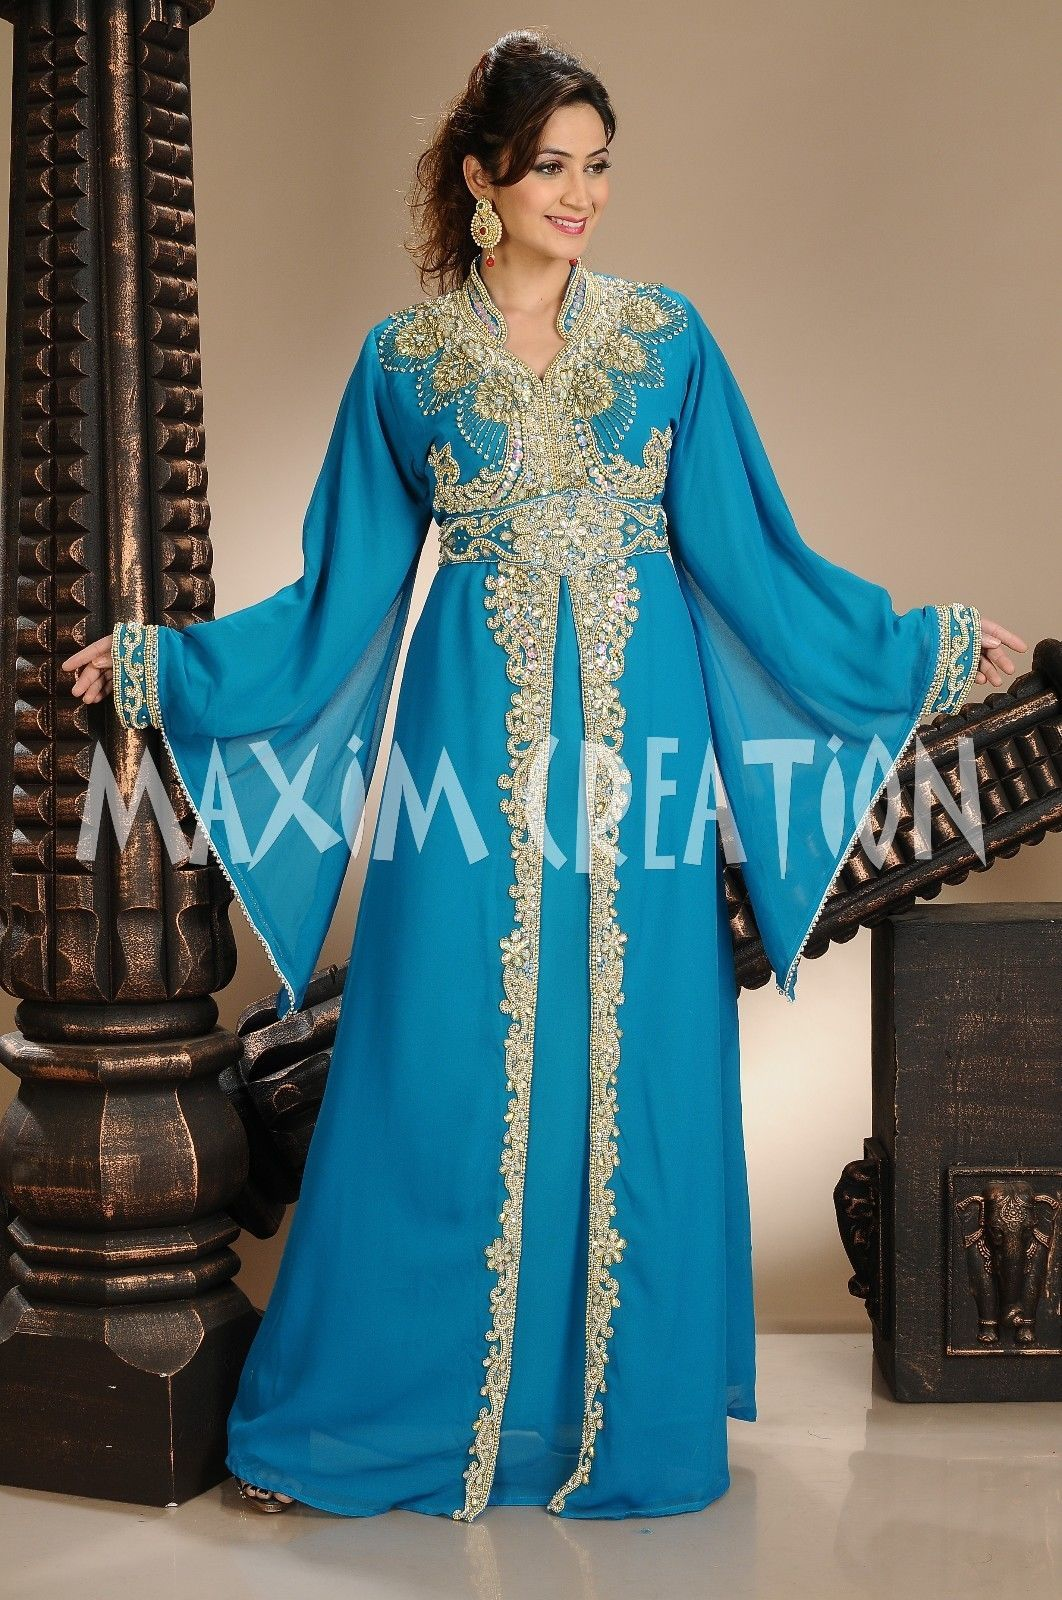 Image tour maghribi dress